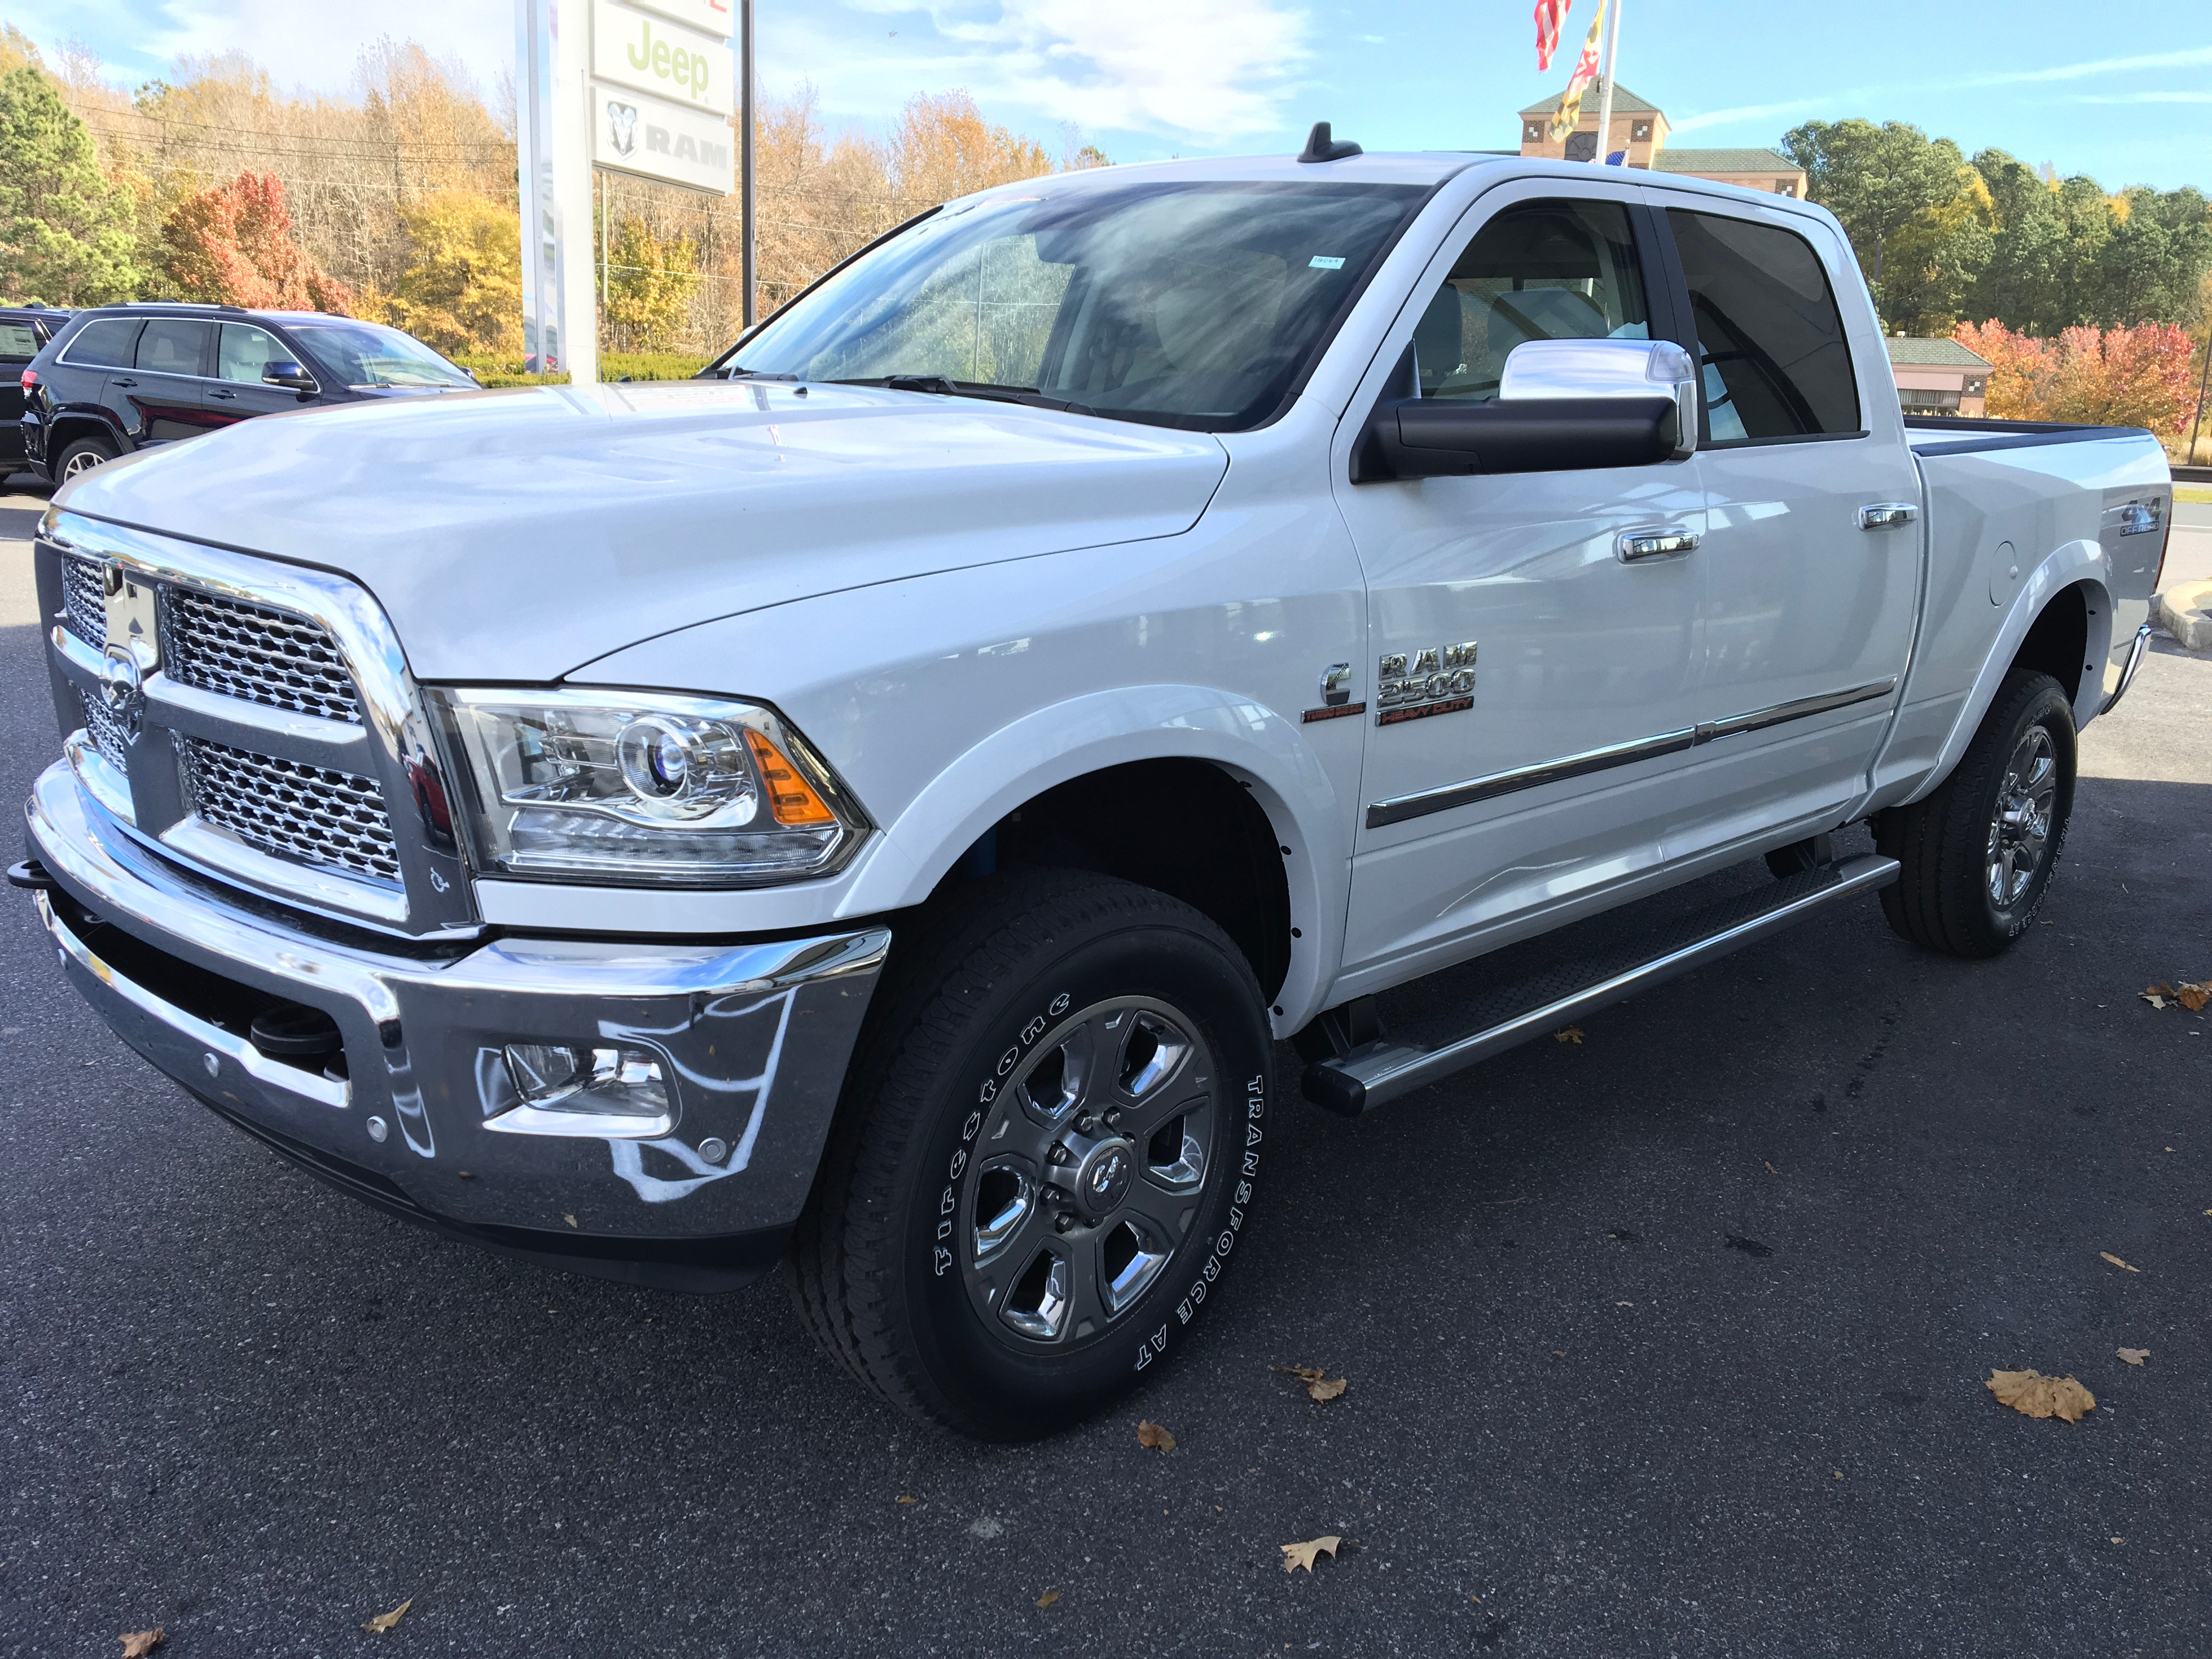 2018 Ram 2500 Crew Cab 4x4, Pickup #18064 - photo 1